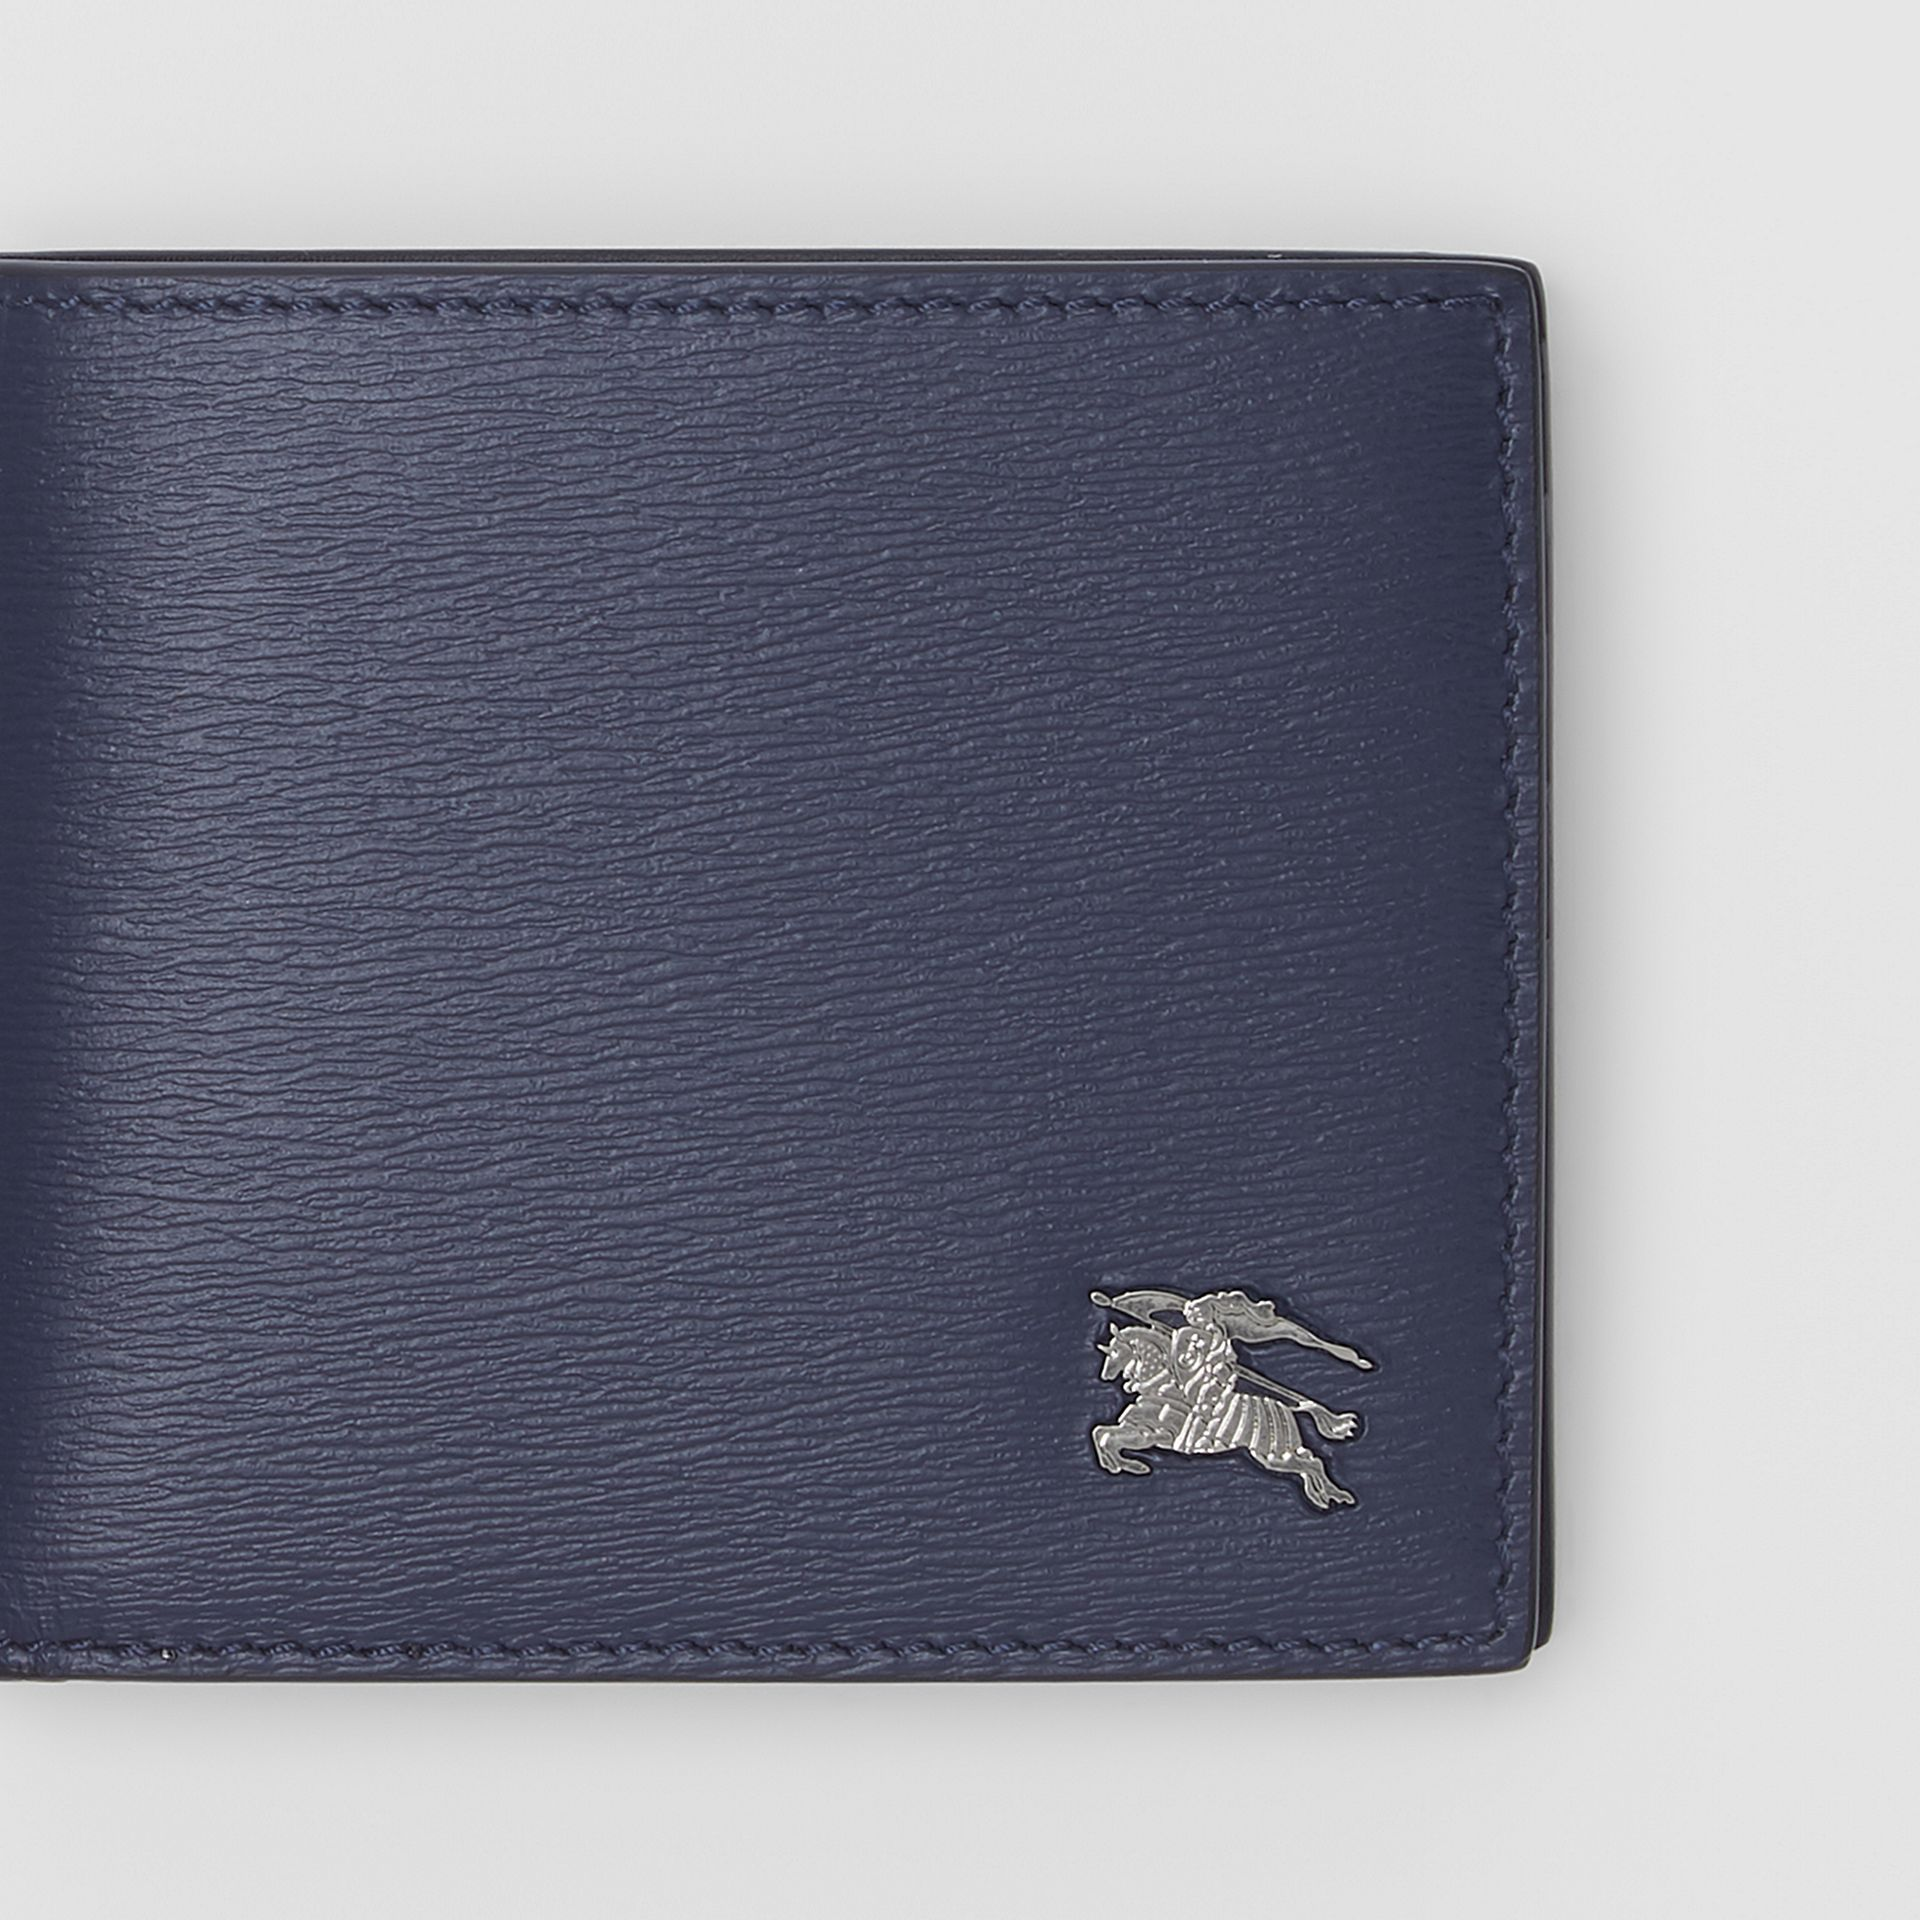 London Leather Bifold Wallet with ID Card Case in Navy - Men | Burberry Singapore - gallery image 1